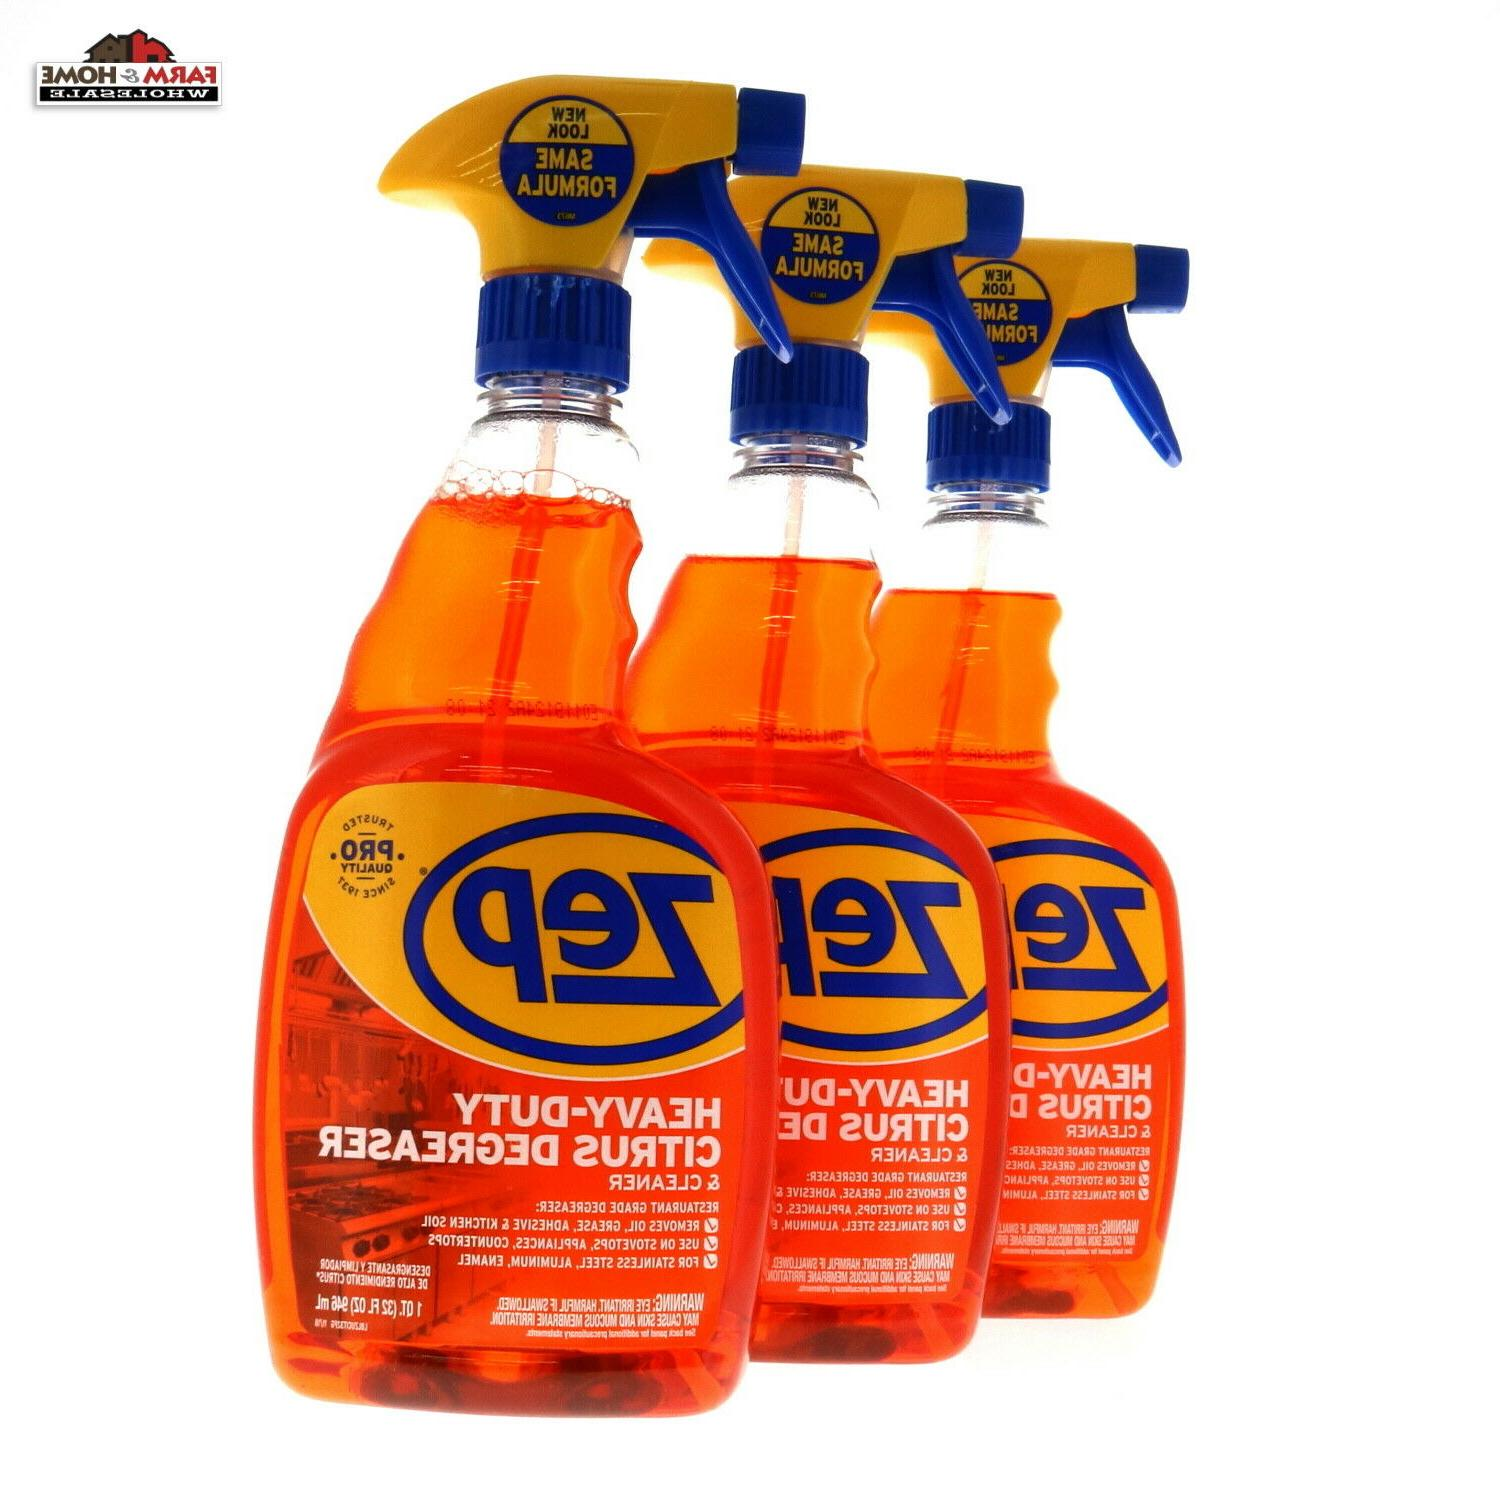 3 heavy duty citrus degreaser and cleaner